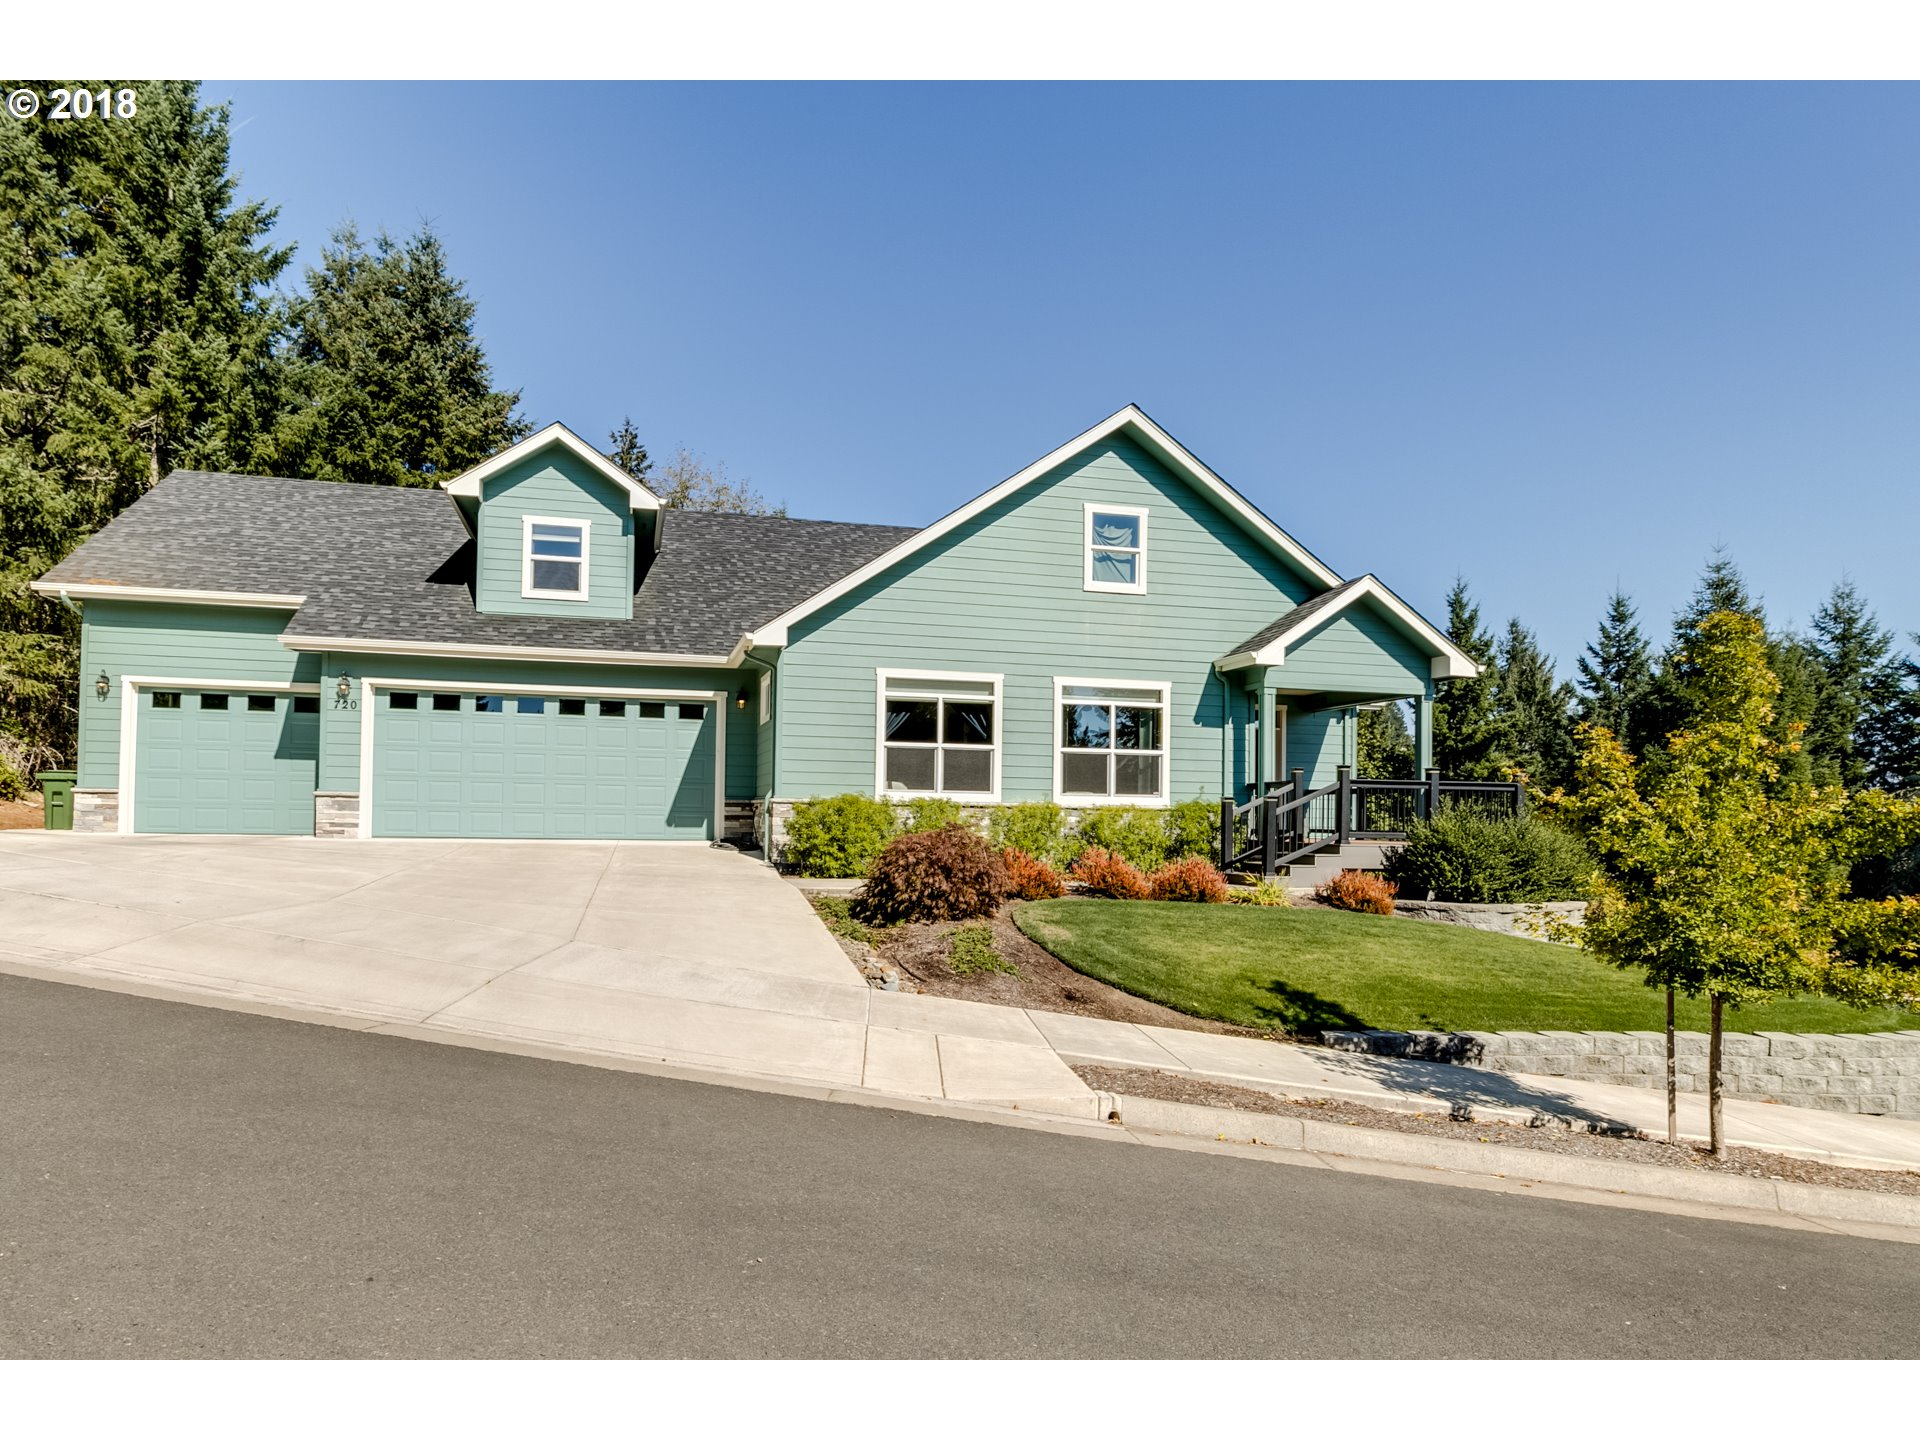 Eugene 3 Bedroom Home For Sale